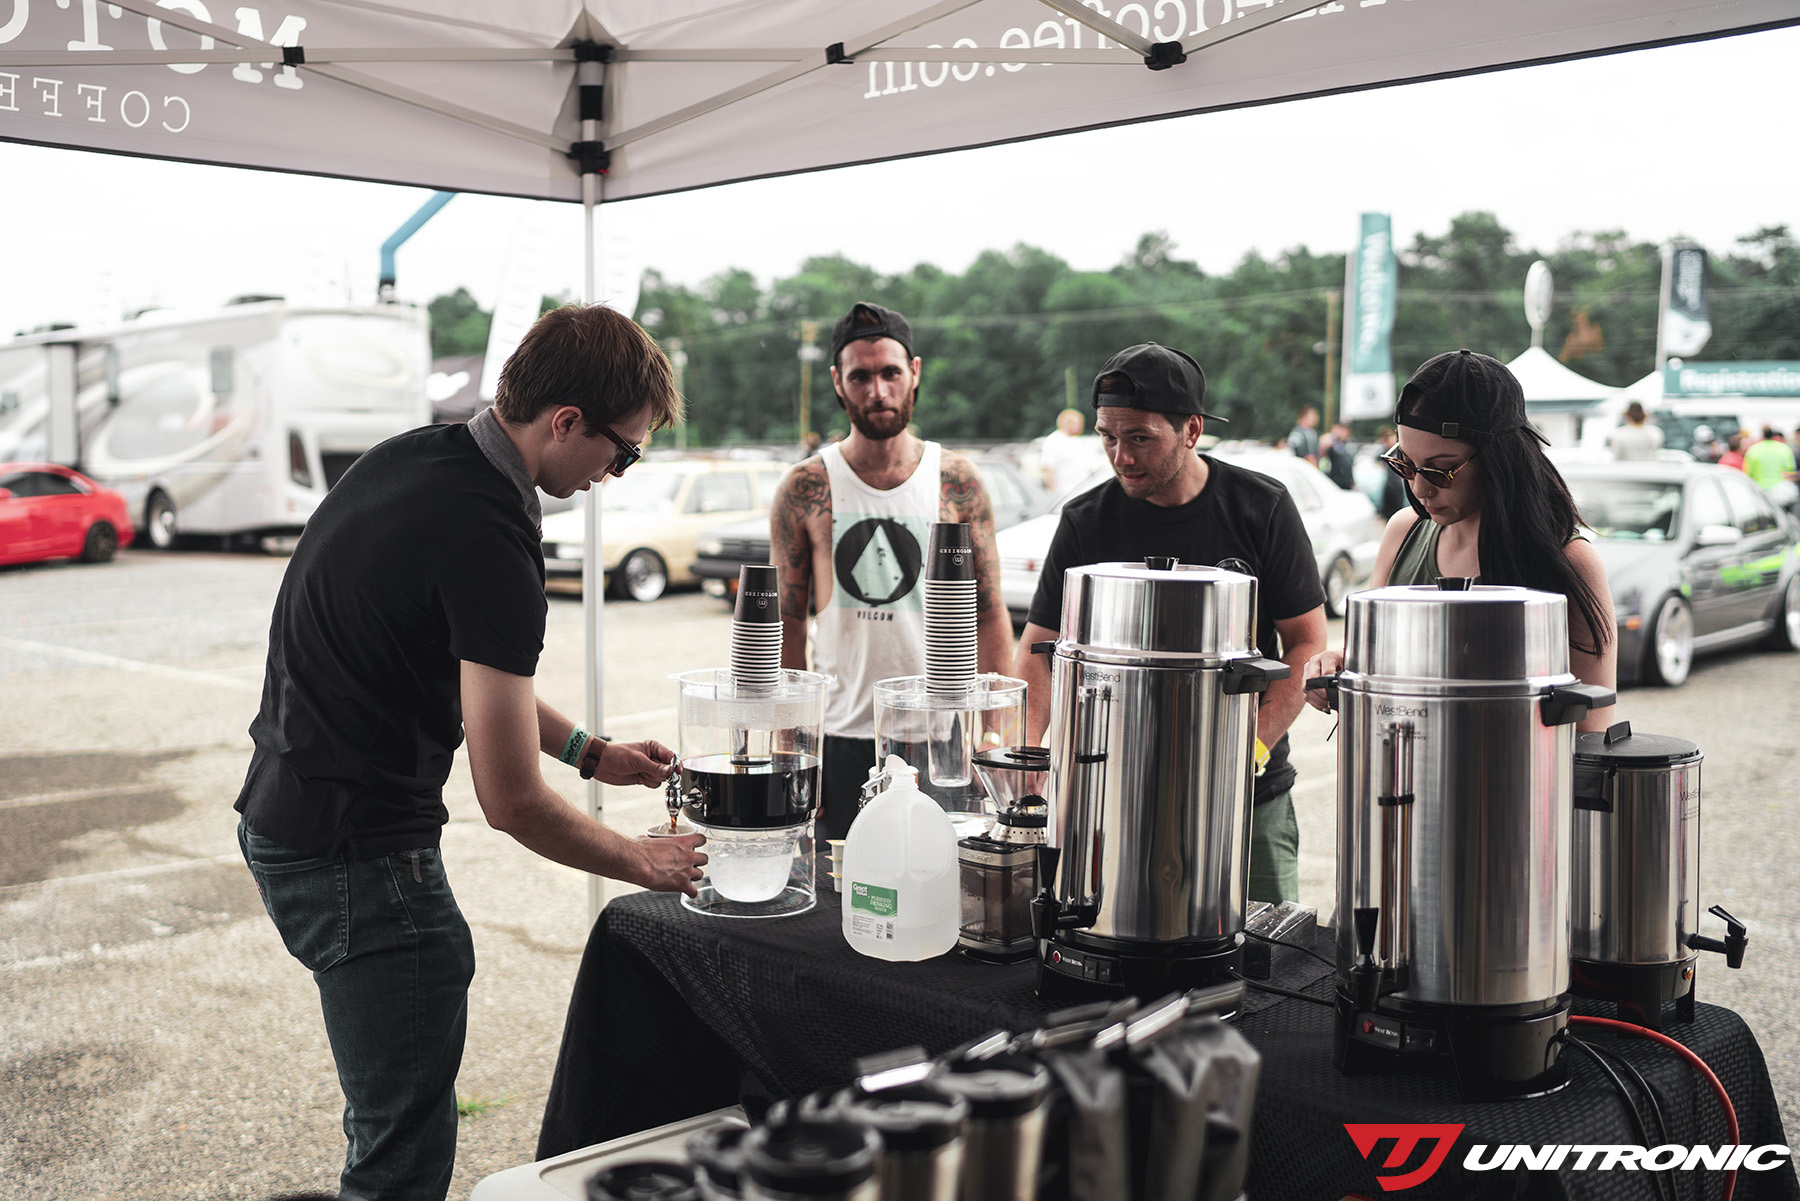 Motorized Coffee and Unitronic